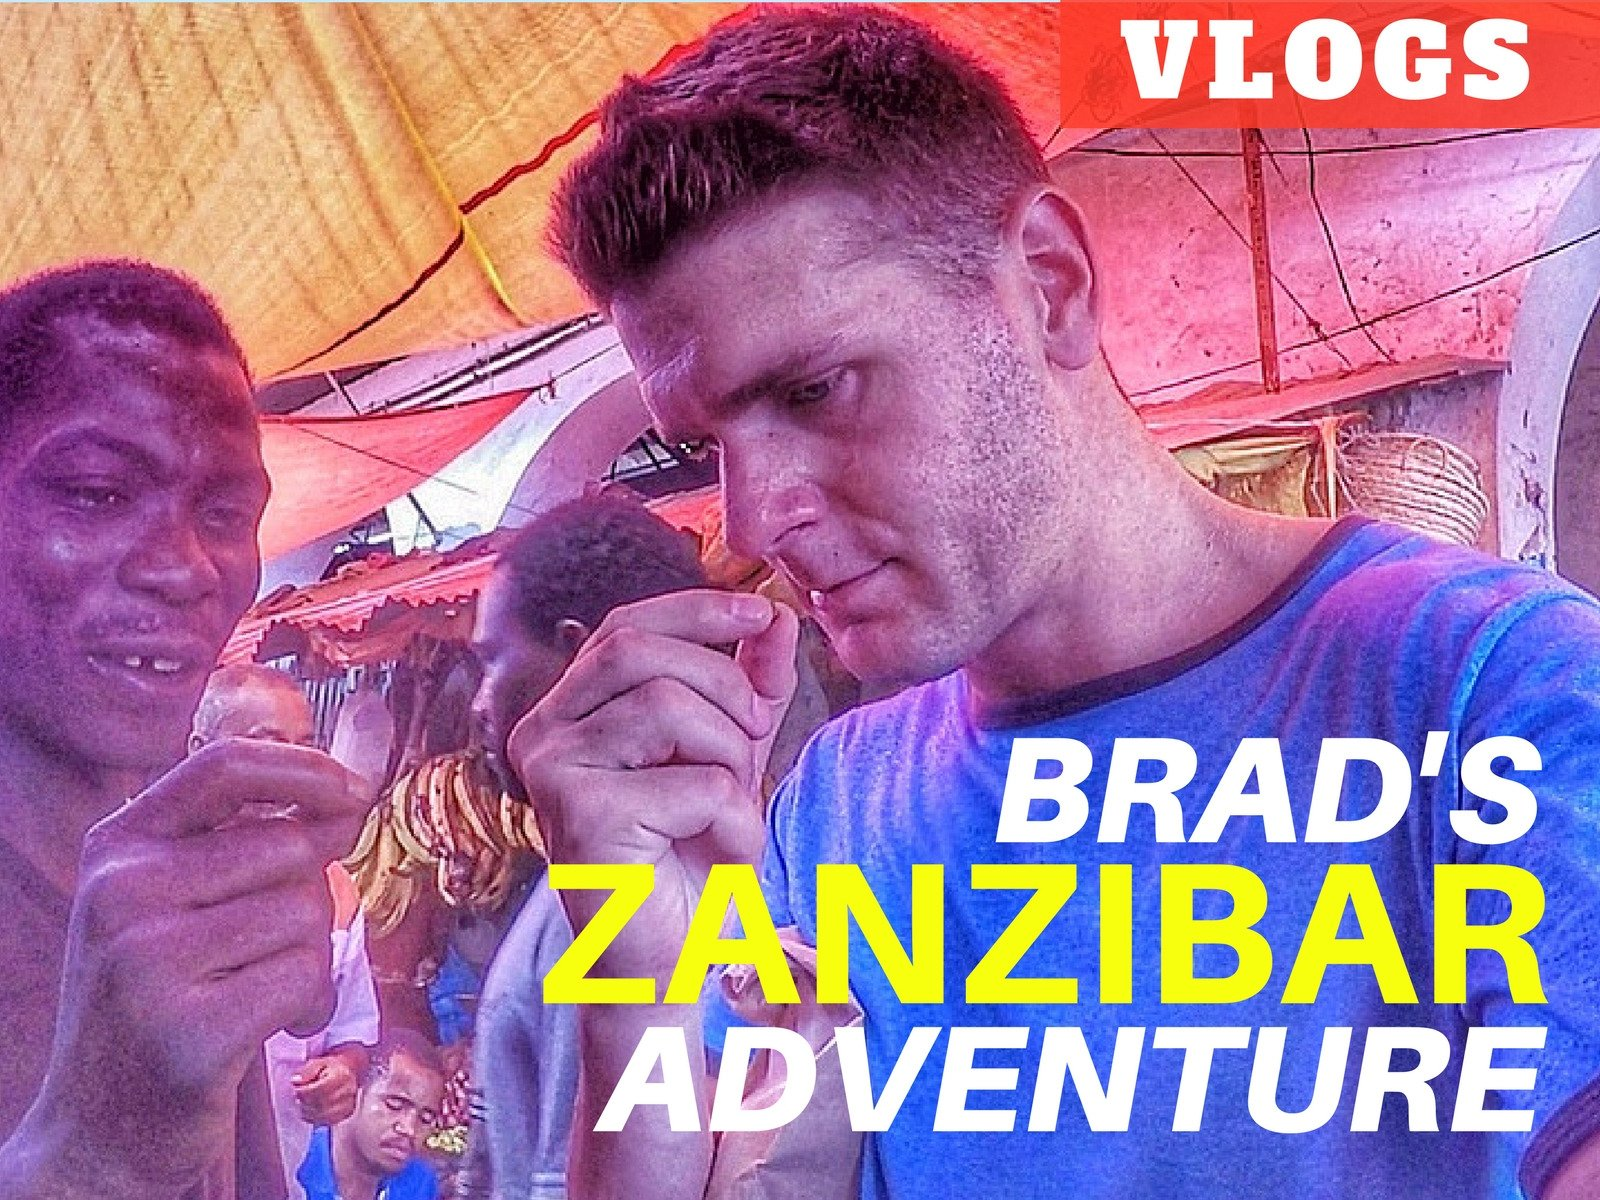 Brad's Zanzibar Adventure Vlogs - Season 1